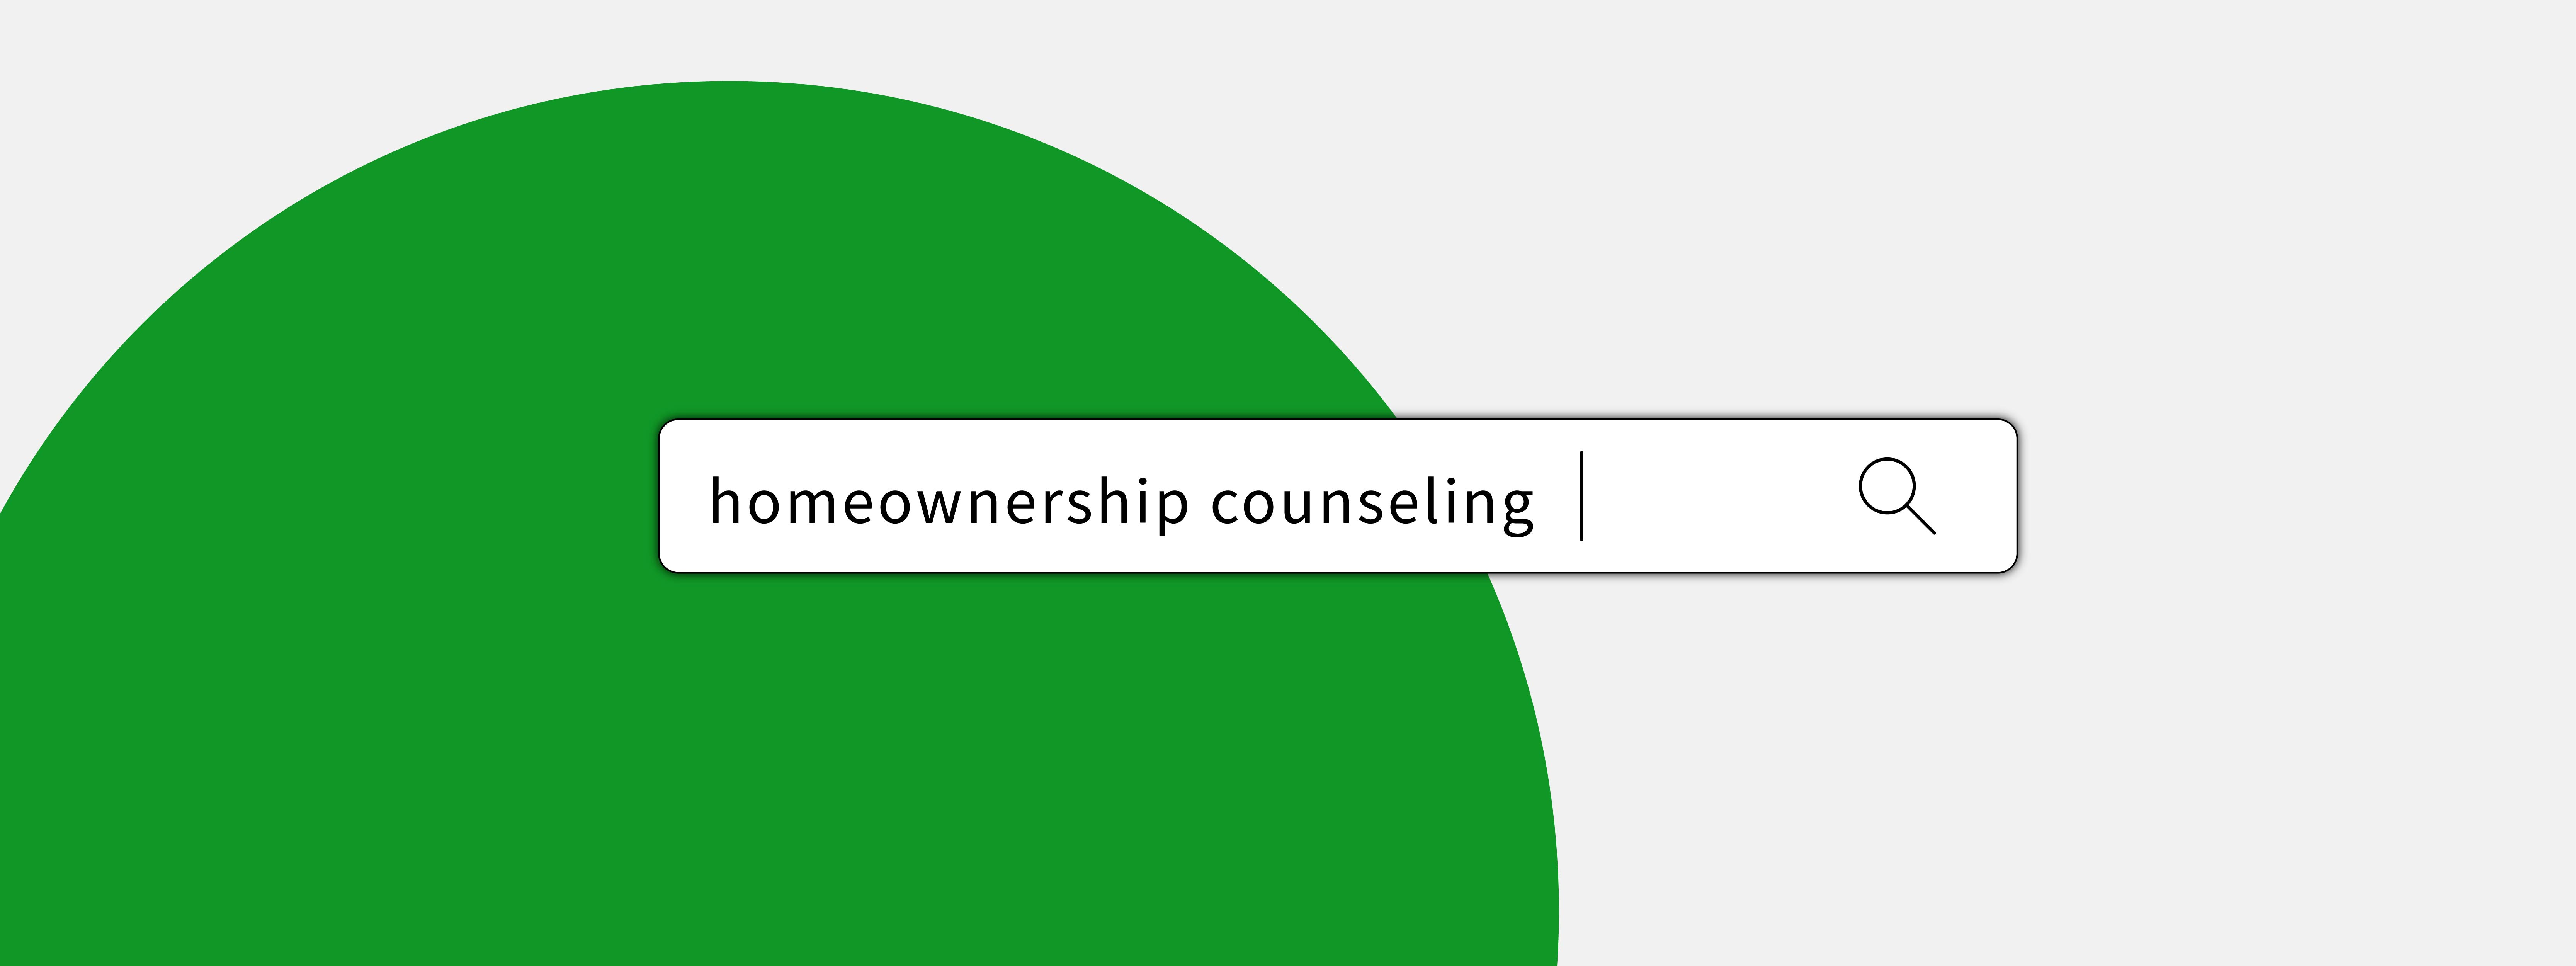 Title photo - What is homeownership counseling?